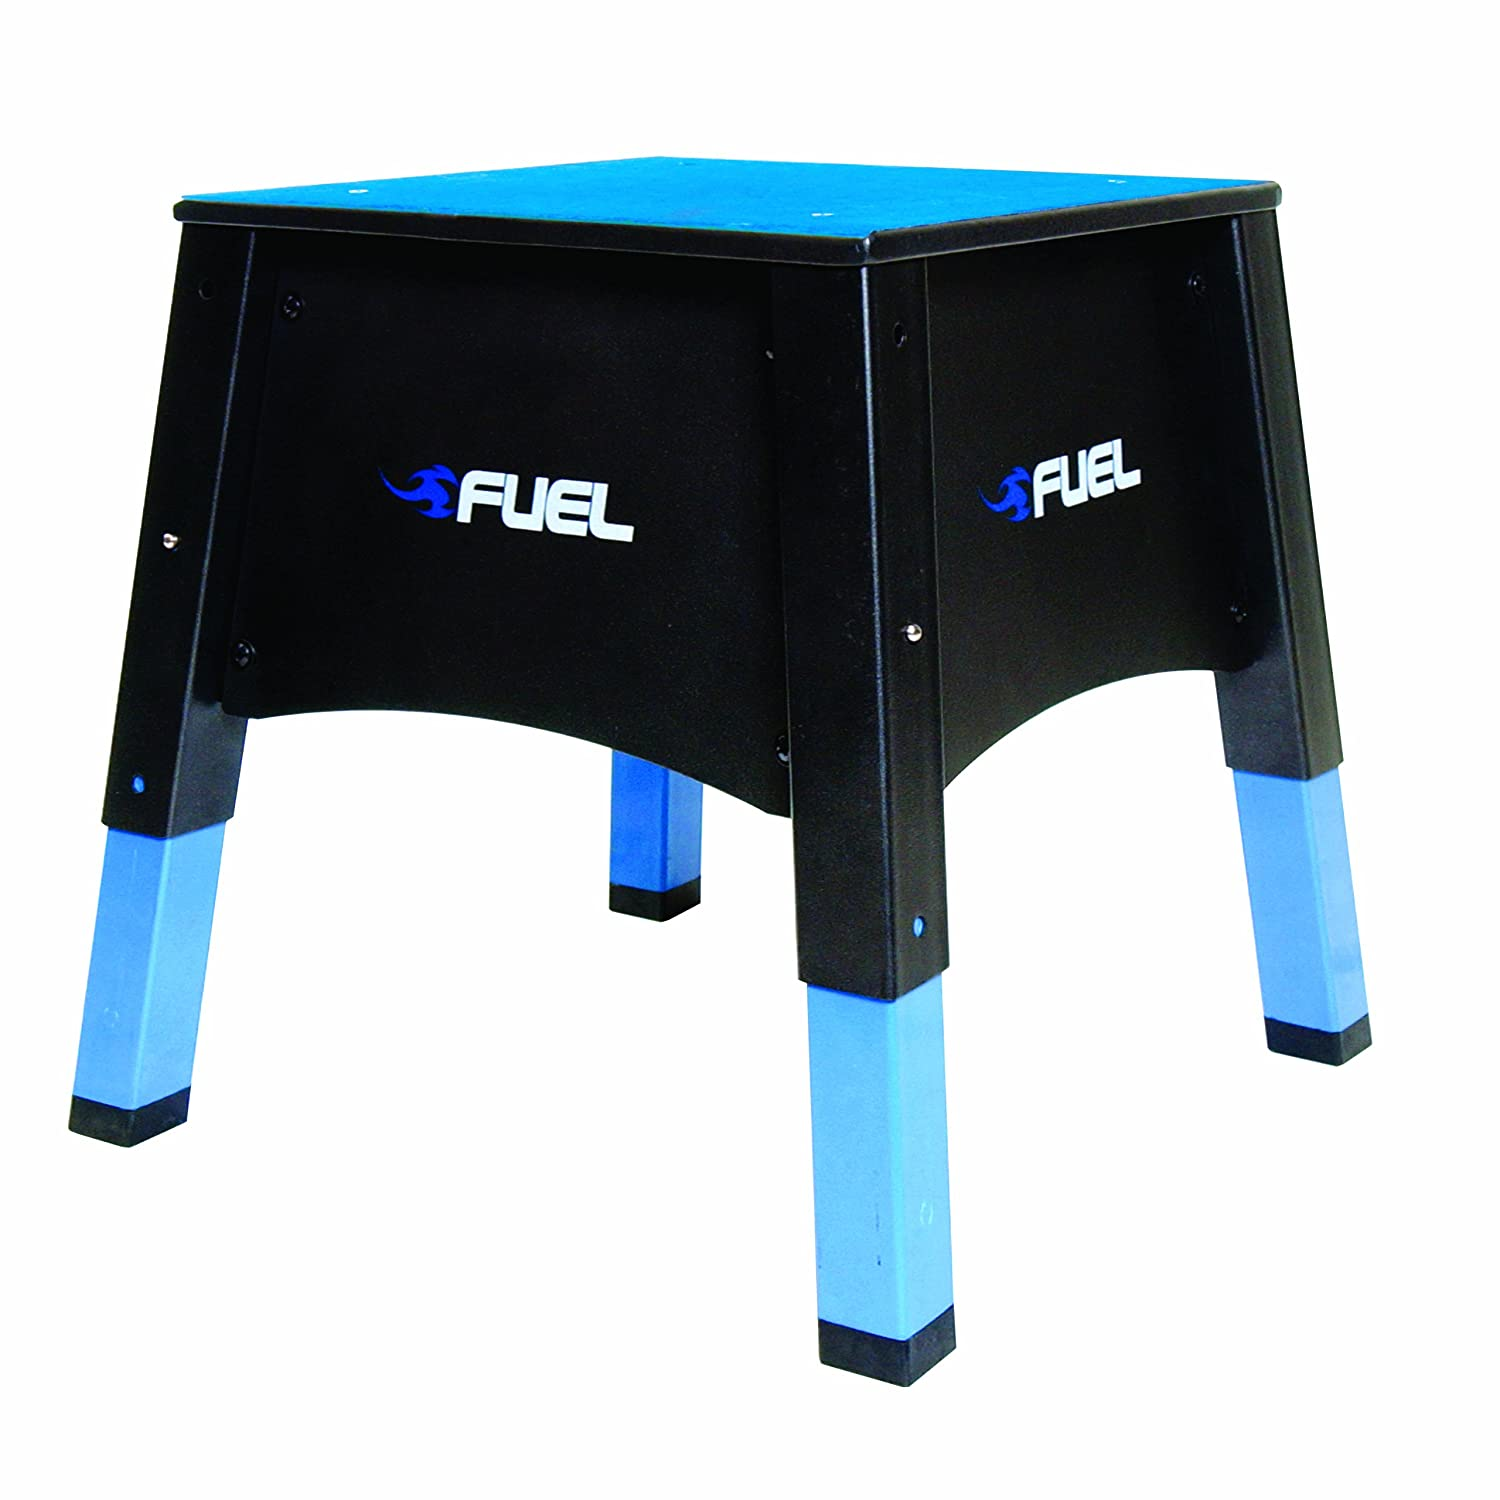 Fuel Performance Adjustable Plyometrics Box